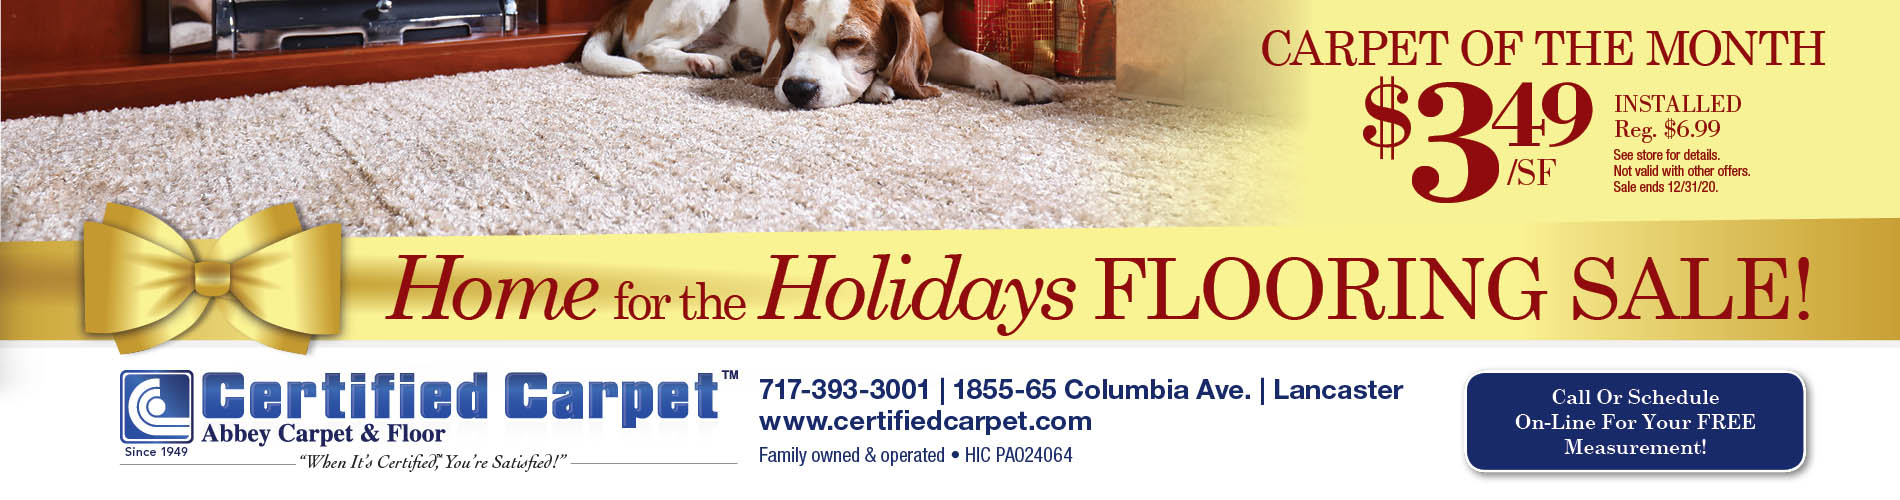 Home for the Holidays flooring sale. Carpet of the month $3.49 sq. ft. at Certified Carpet Abbey Carpet and Floor